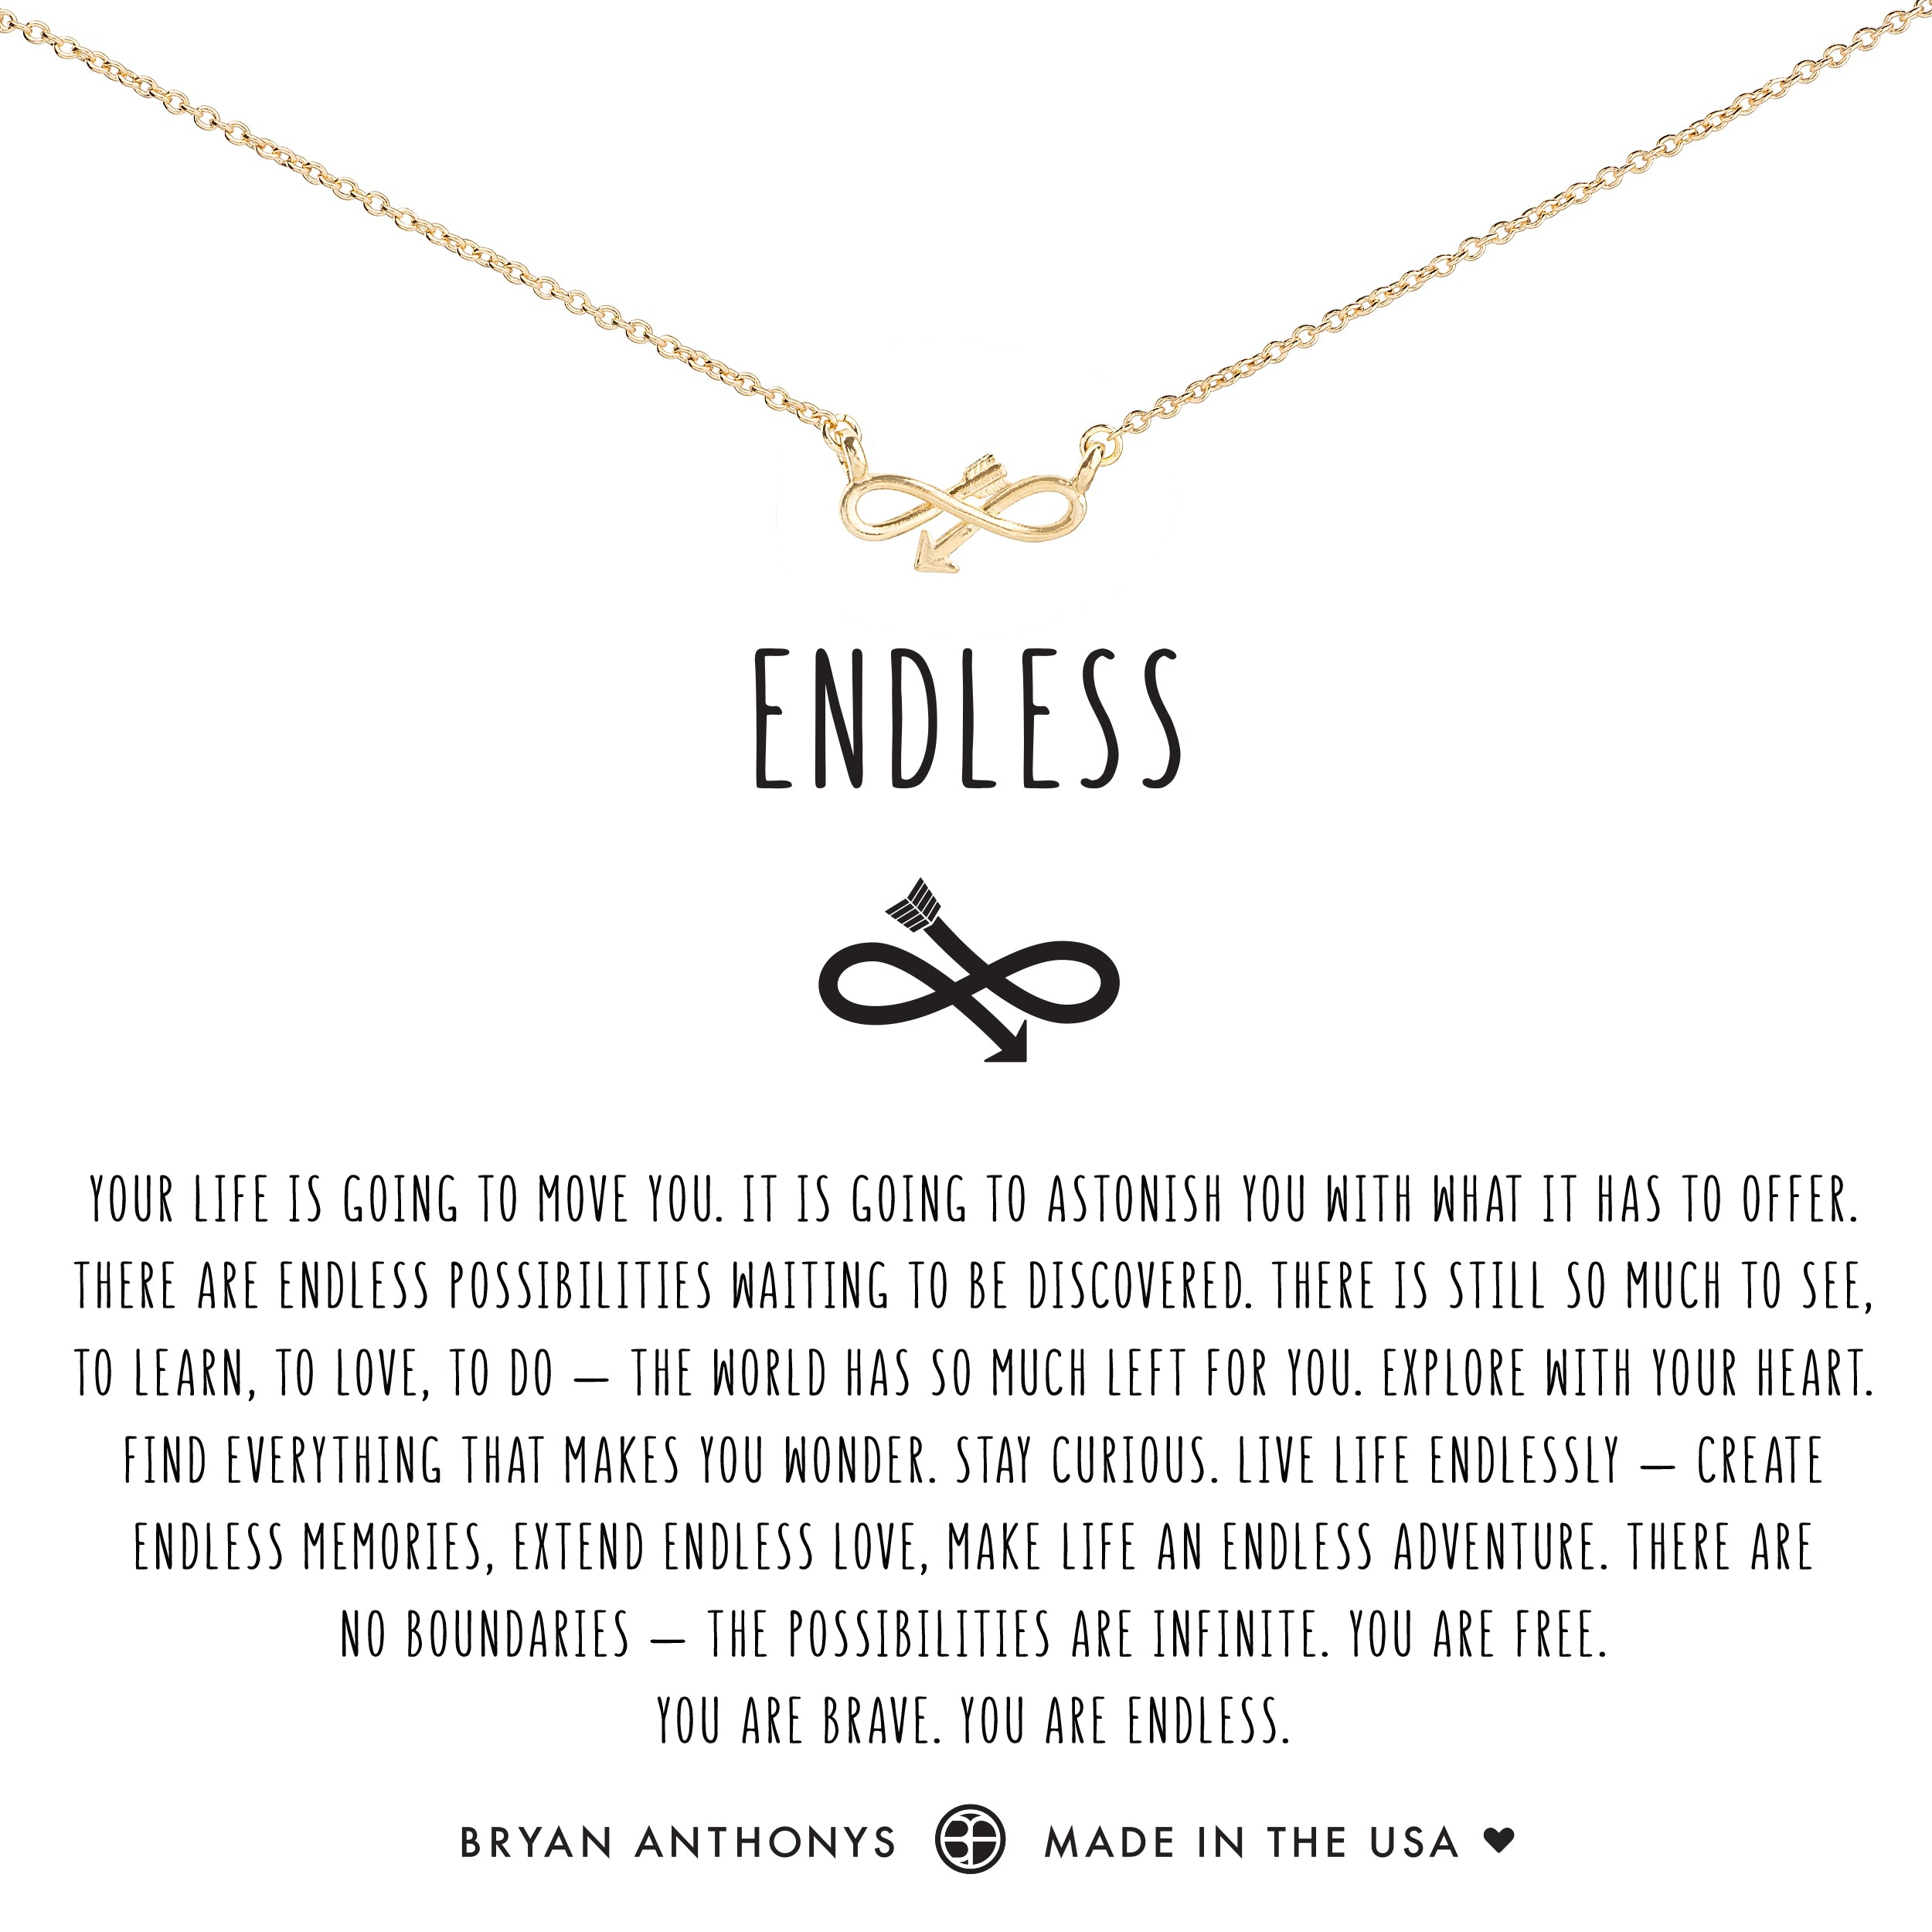 af76cd72e Bryan Anthonys dainty infinity endless arrow necklace 14k gold